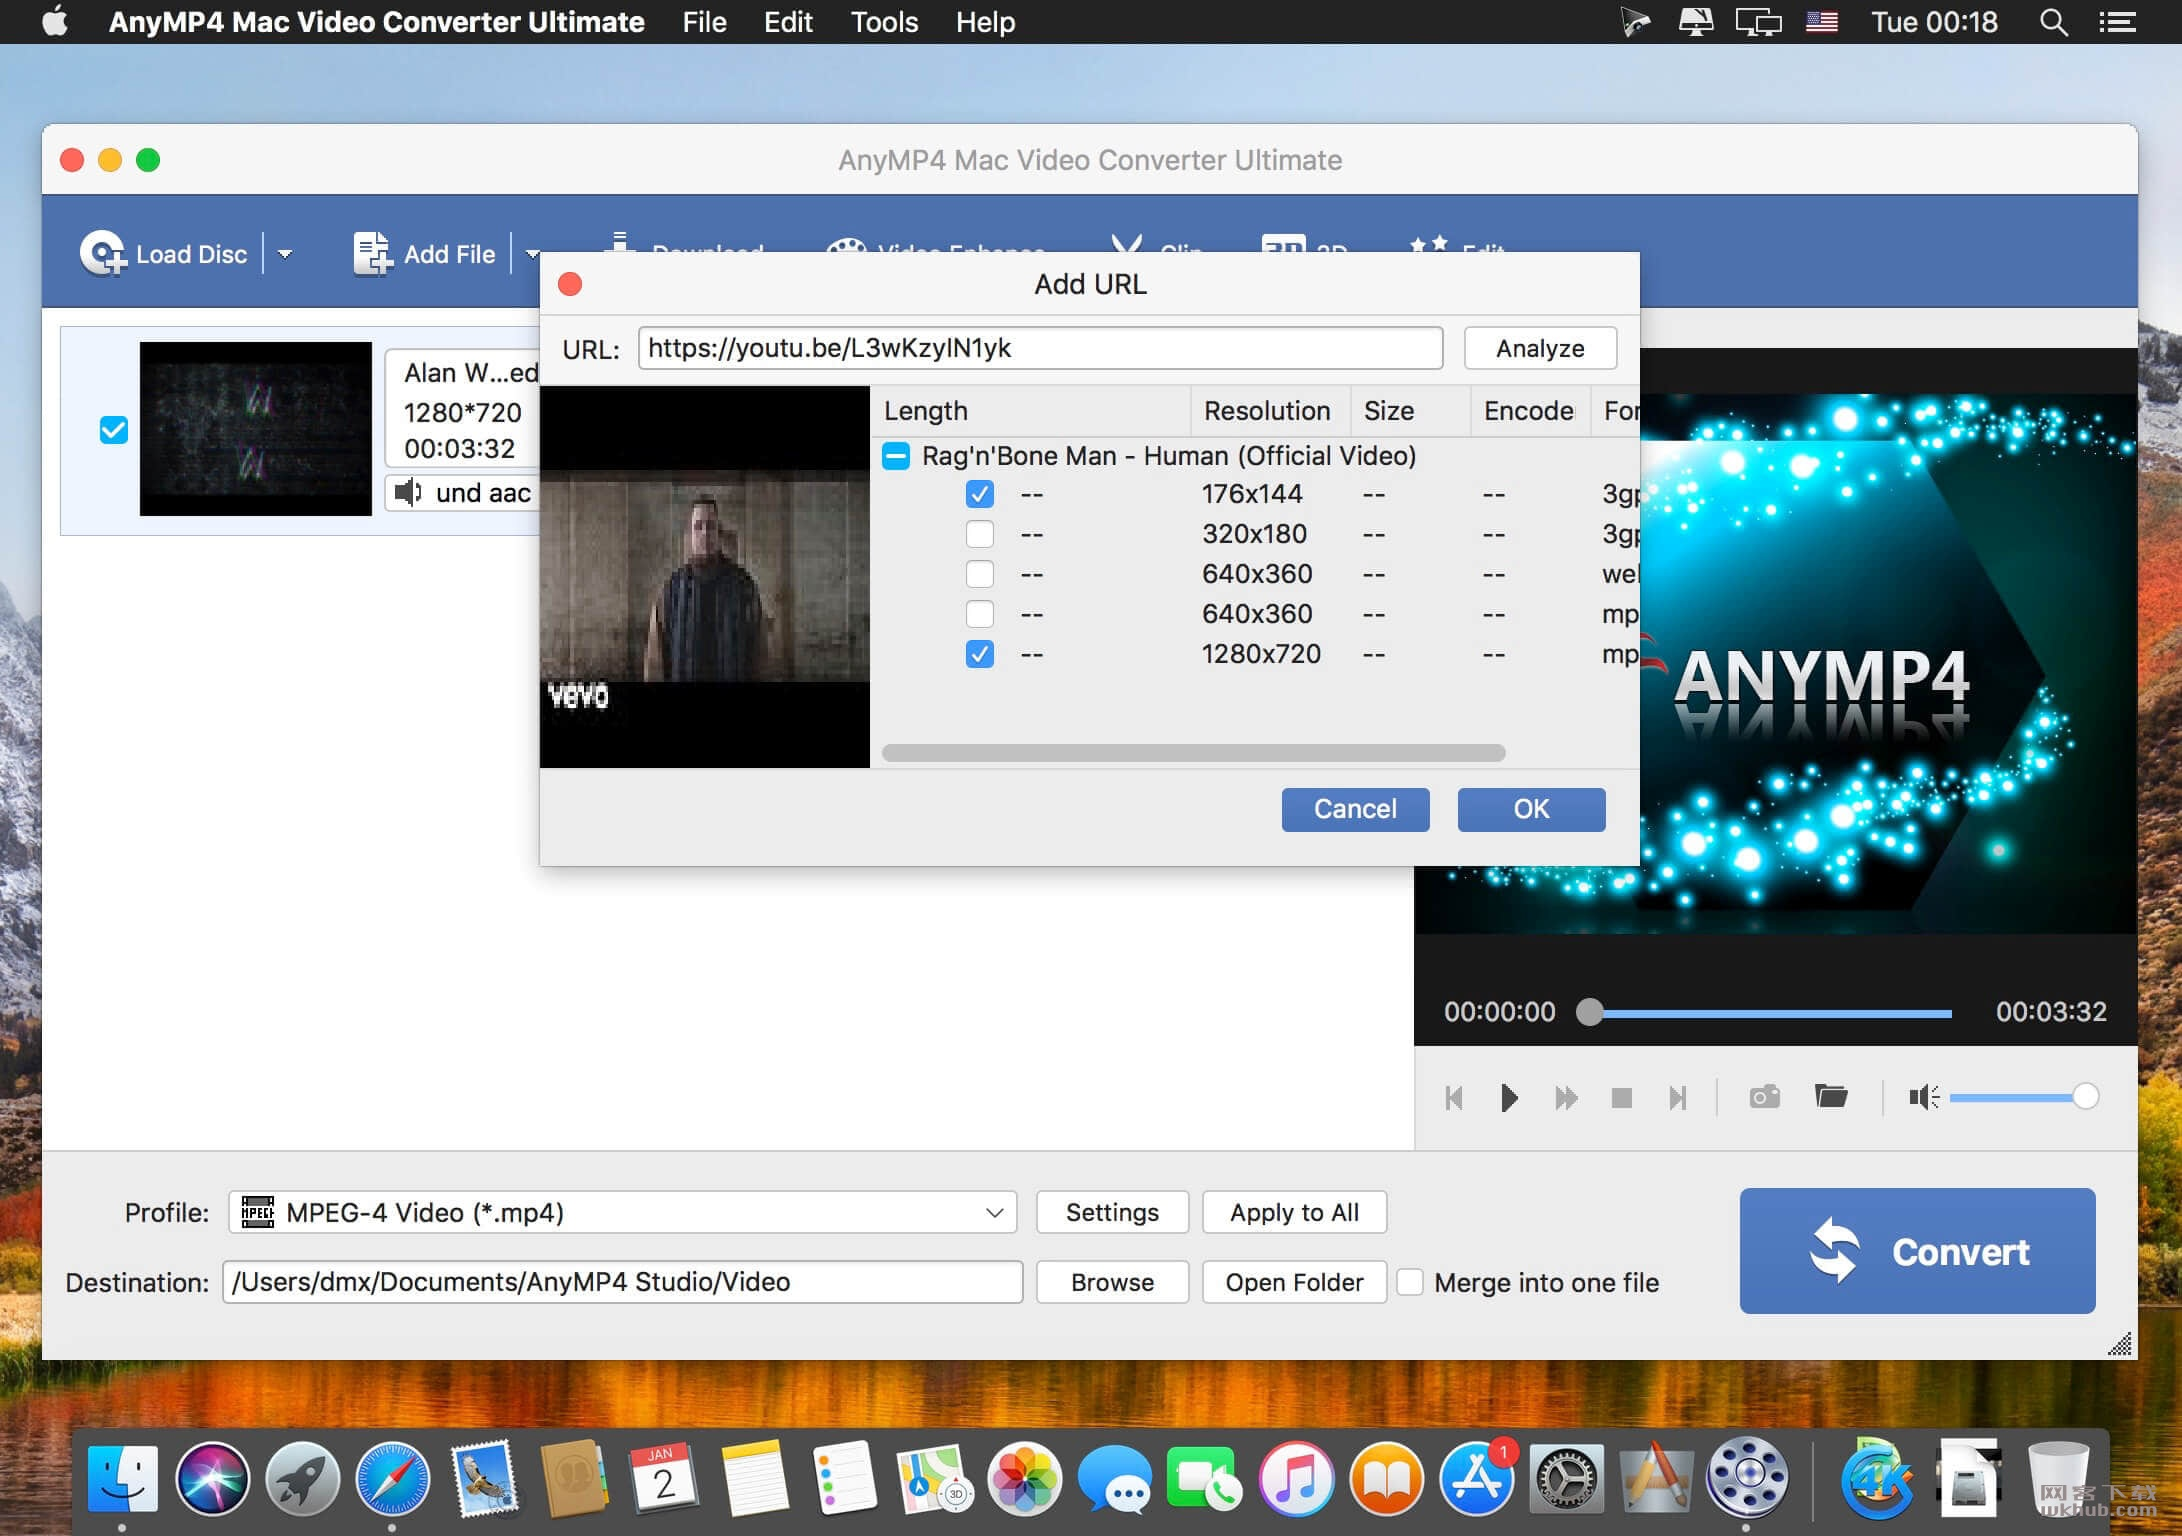 AnyMP4 Mac Video Converter Ultimate 8.2.18 强大的视频转换编辑工具